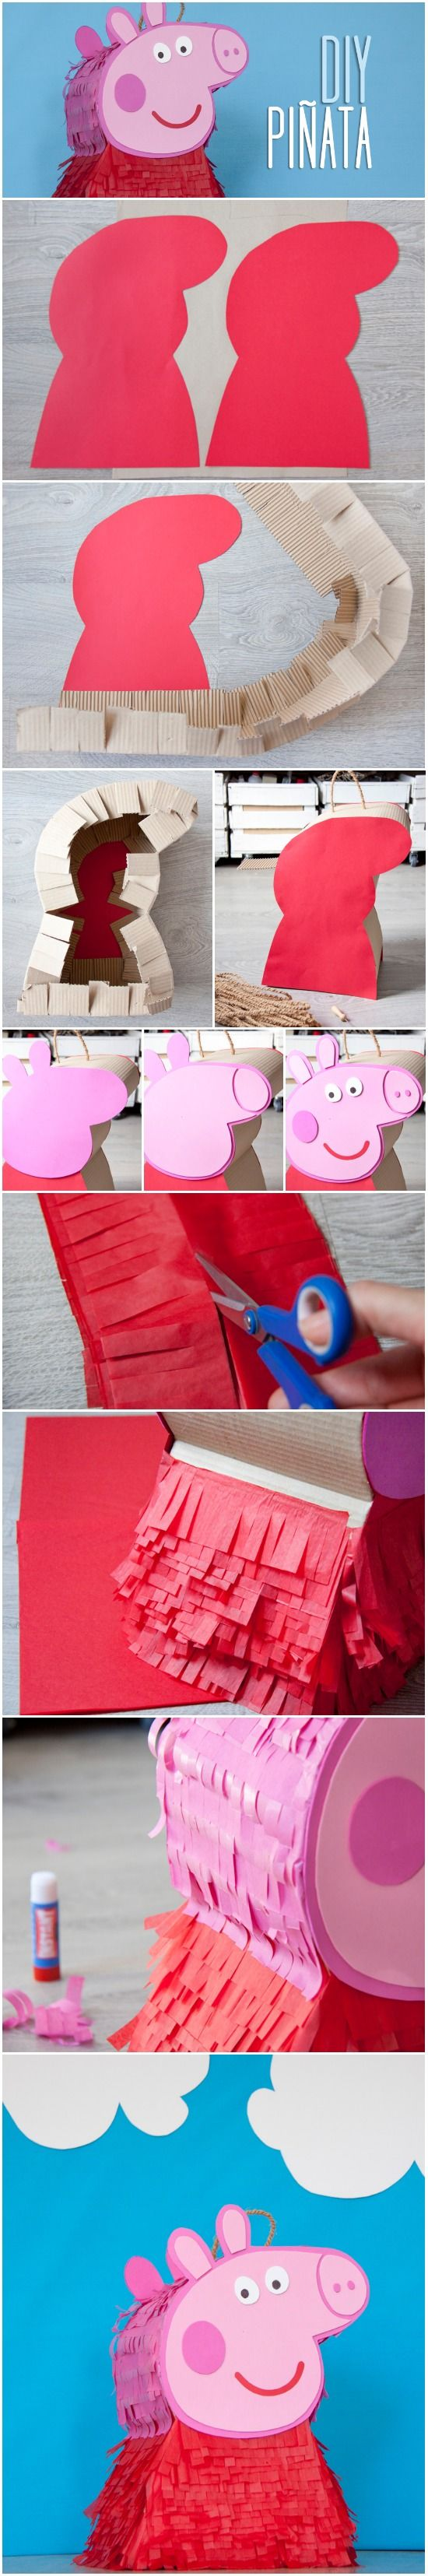 tutorial pinata peppa pig